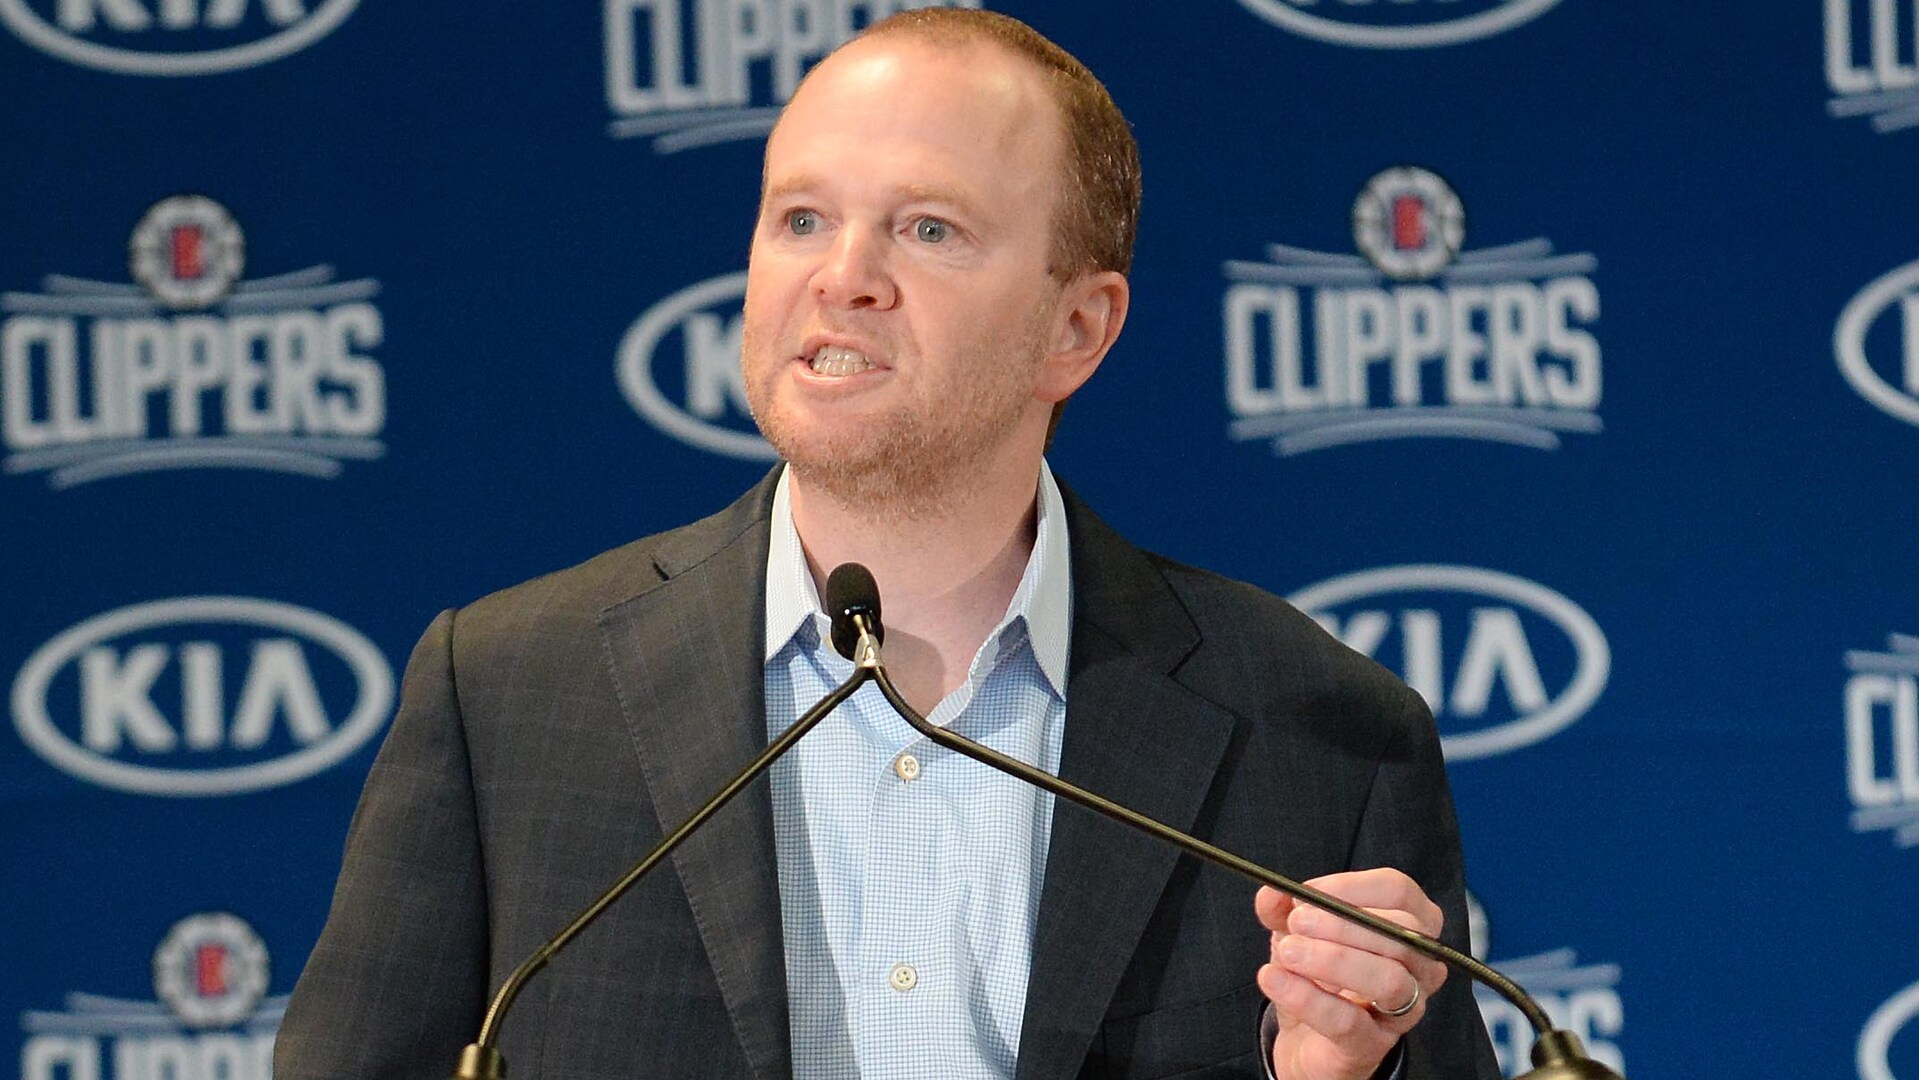 Lawrence Frank wins 2019-20 NBA Basketball Executive of the Year Award